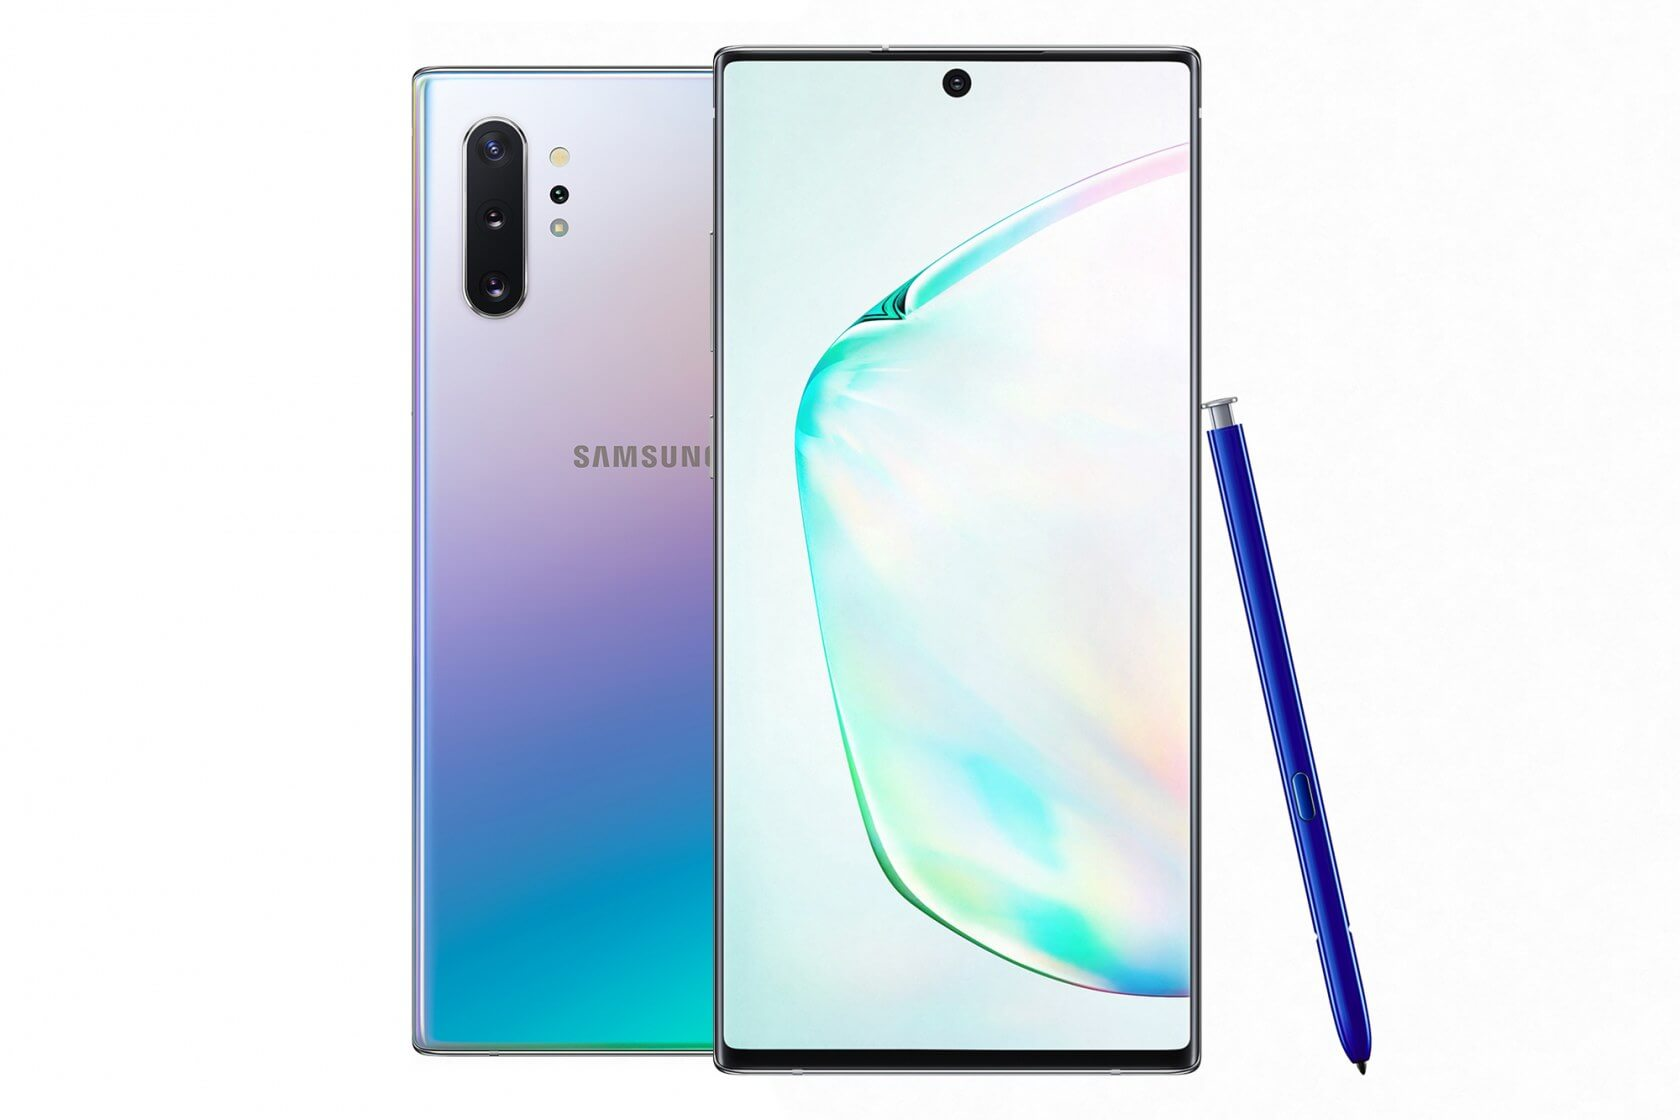 Rumor: Samsung could merge the Note and S-series into one new handset